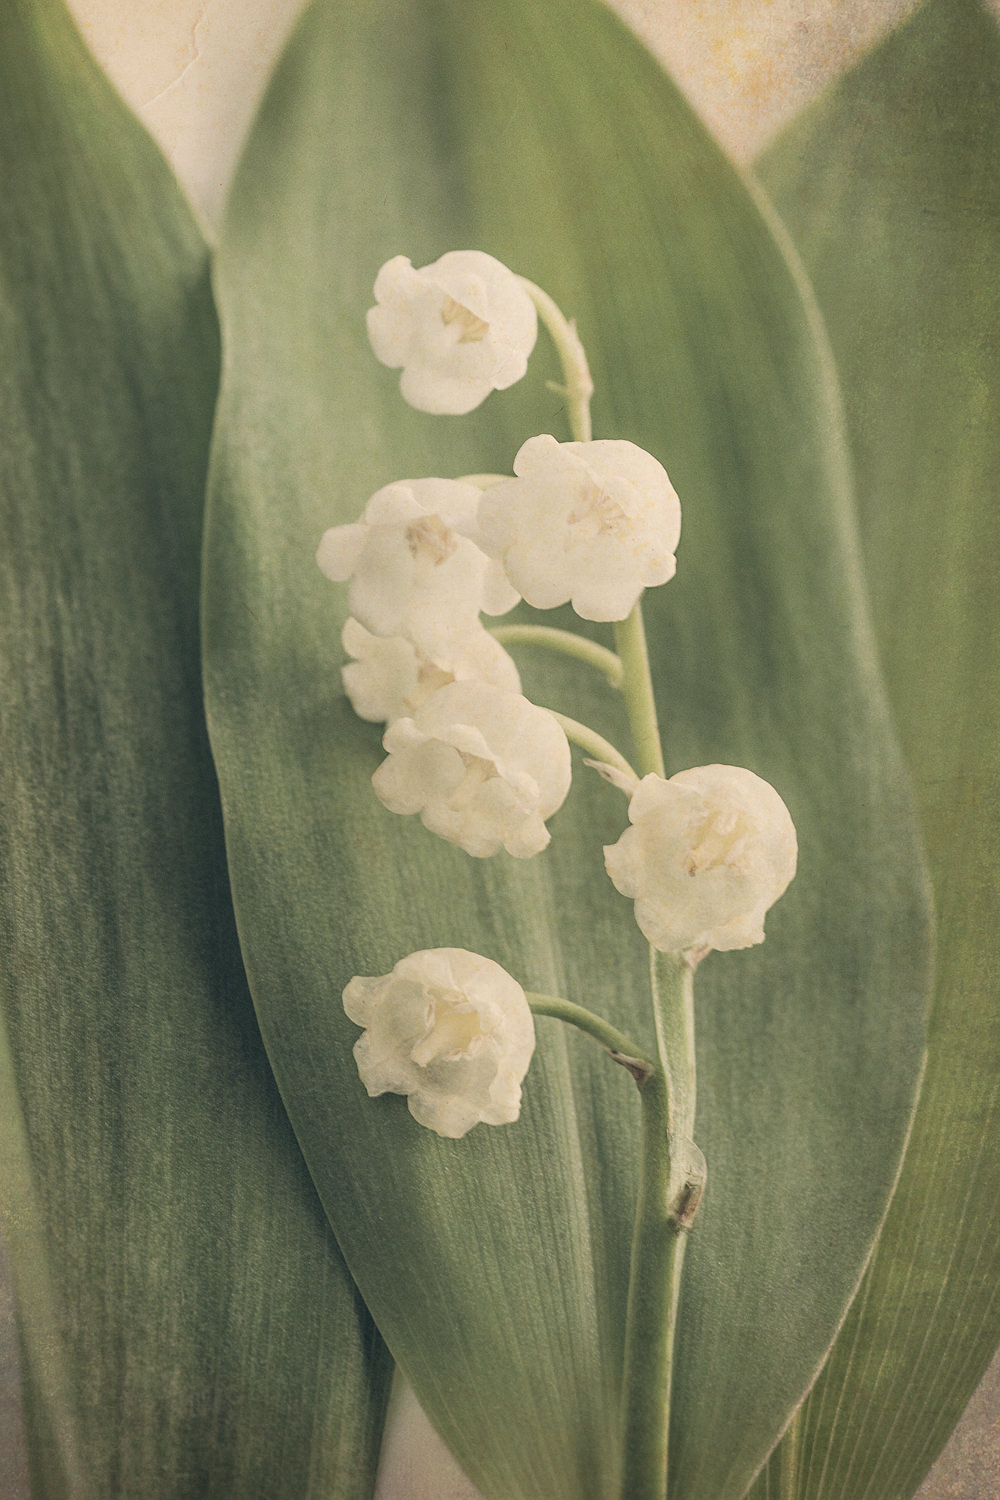 Scents of Spring - Lily of the Valley iii